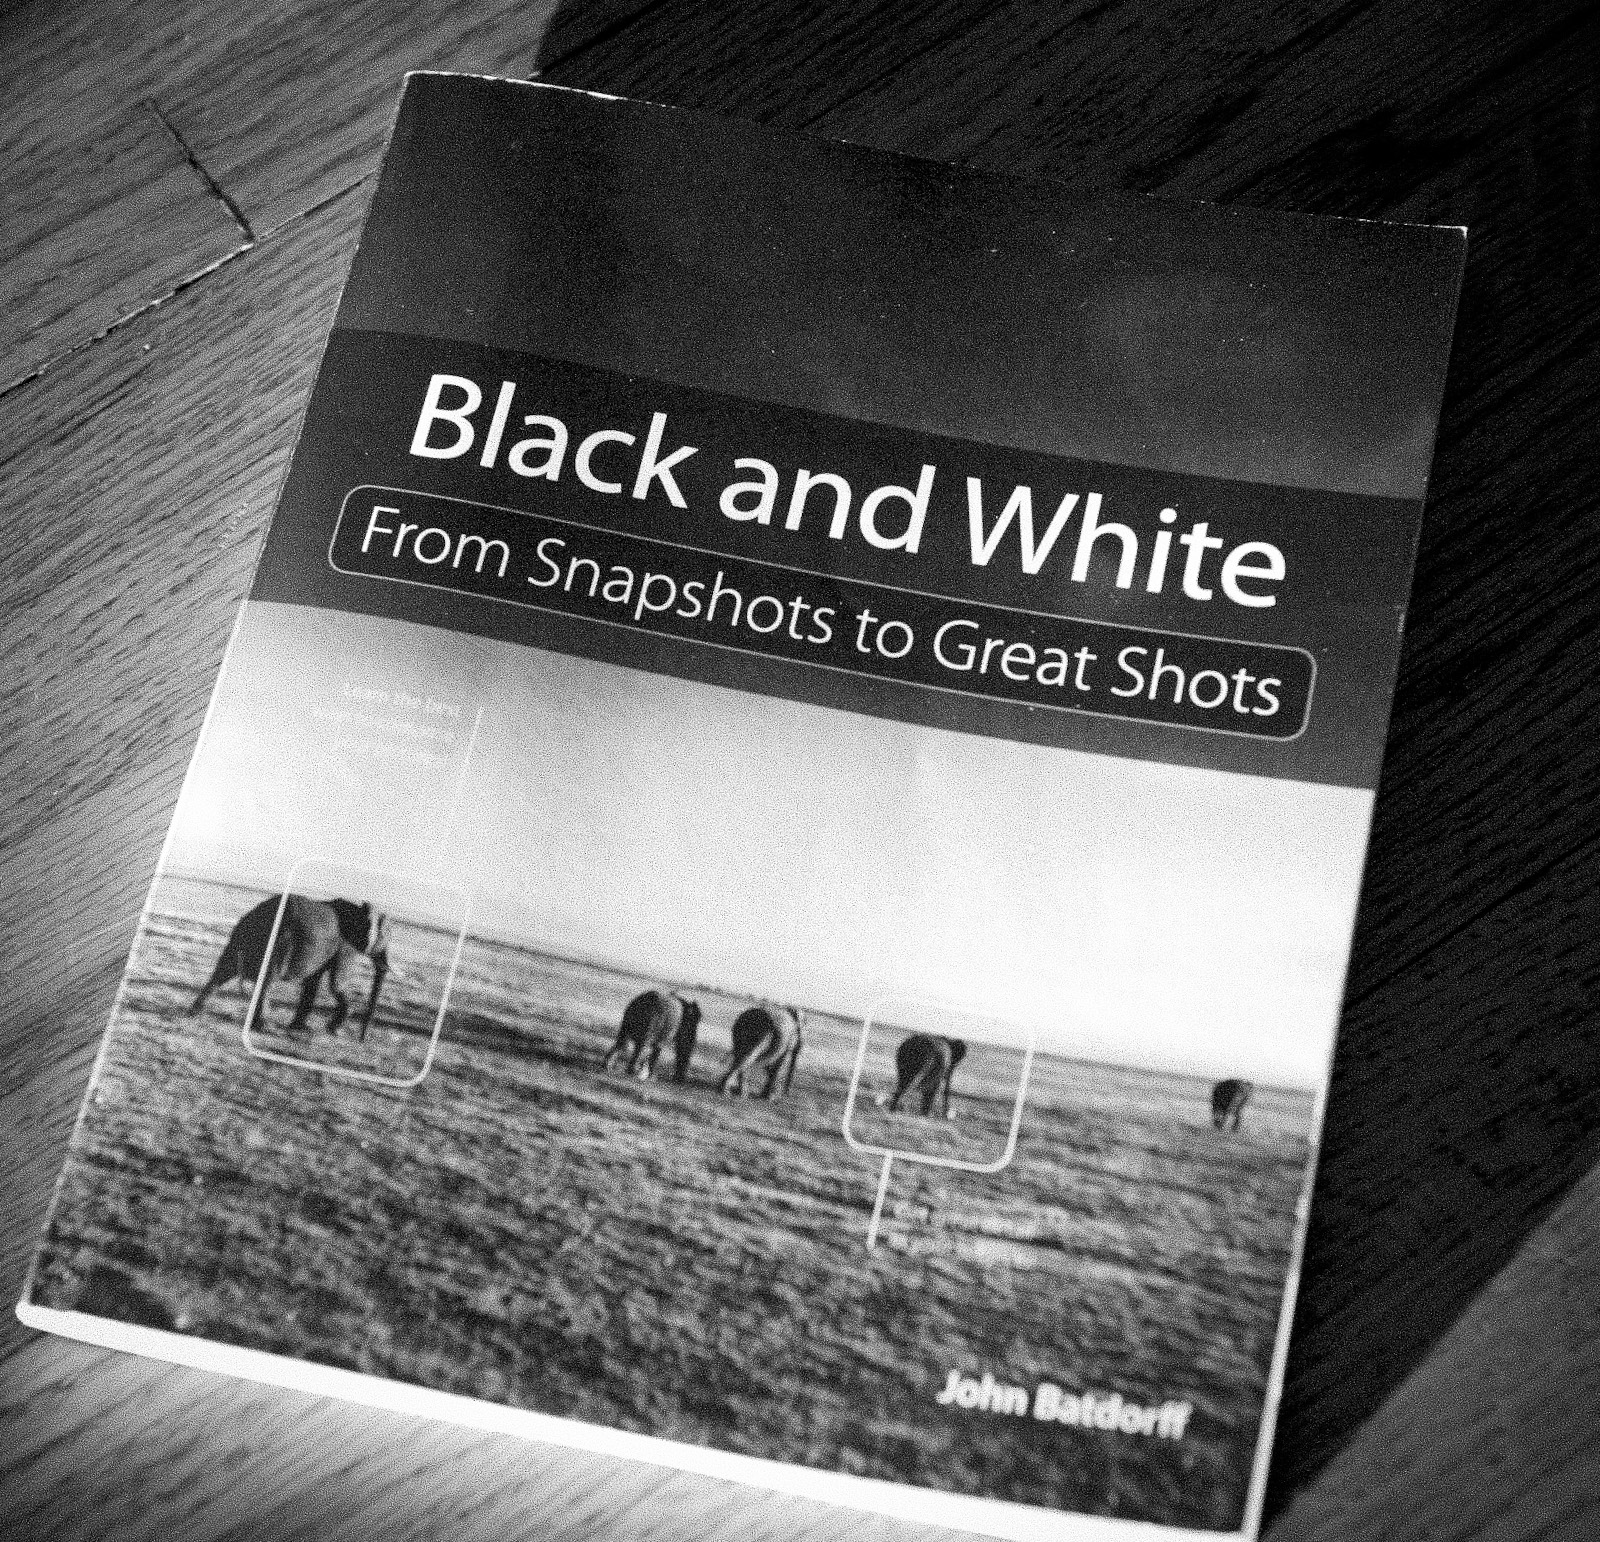 John Batdorff's Black and White: From Snapshots to Great Shots